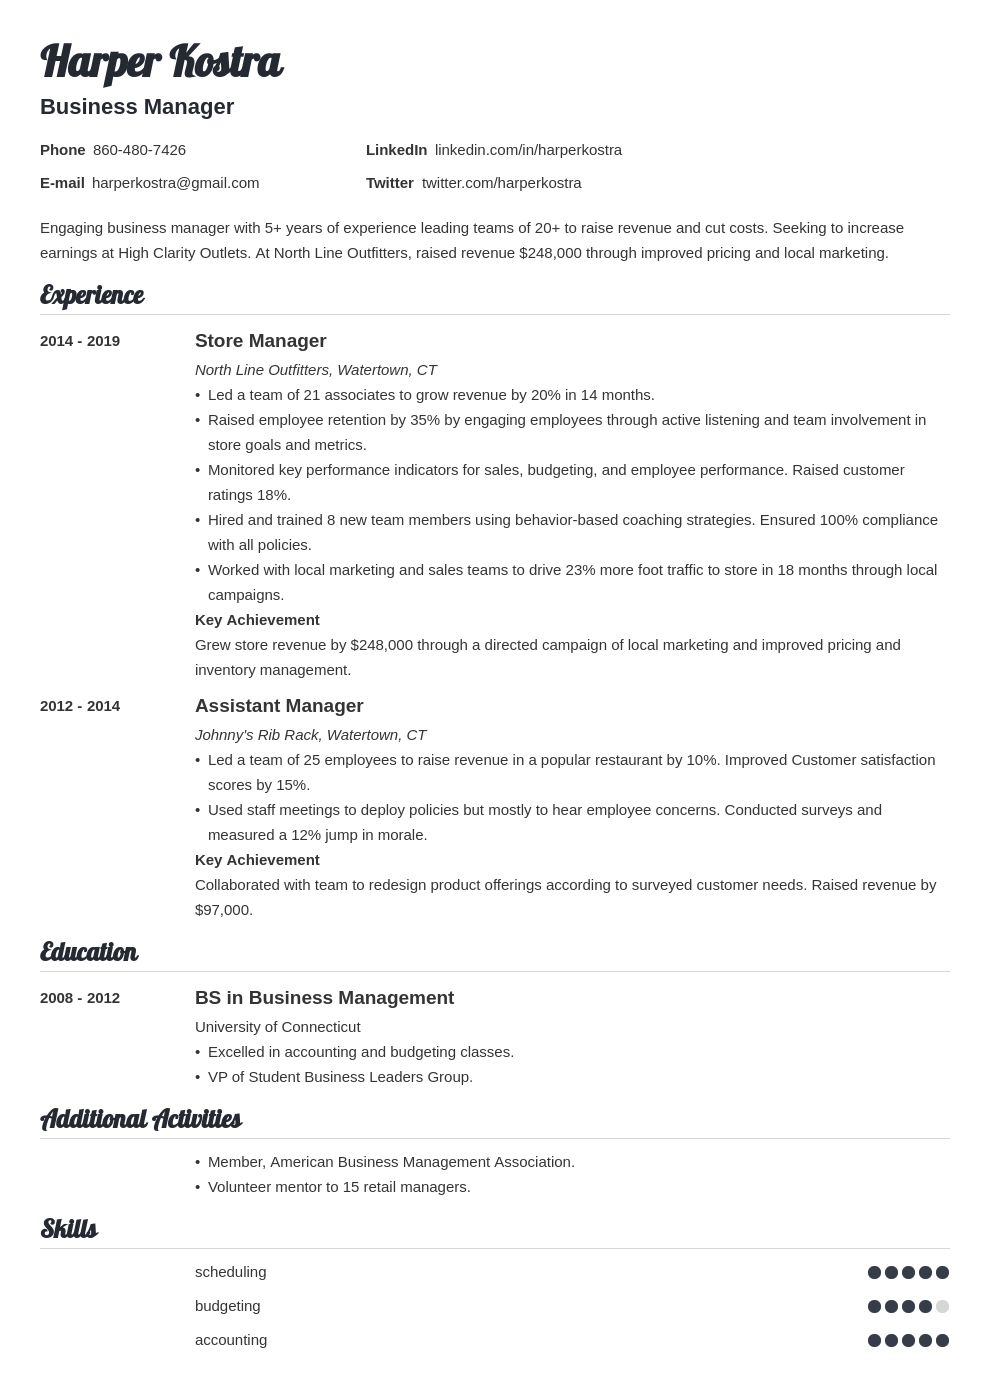 business manager resume example template valera